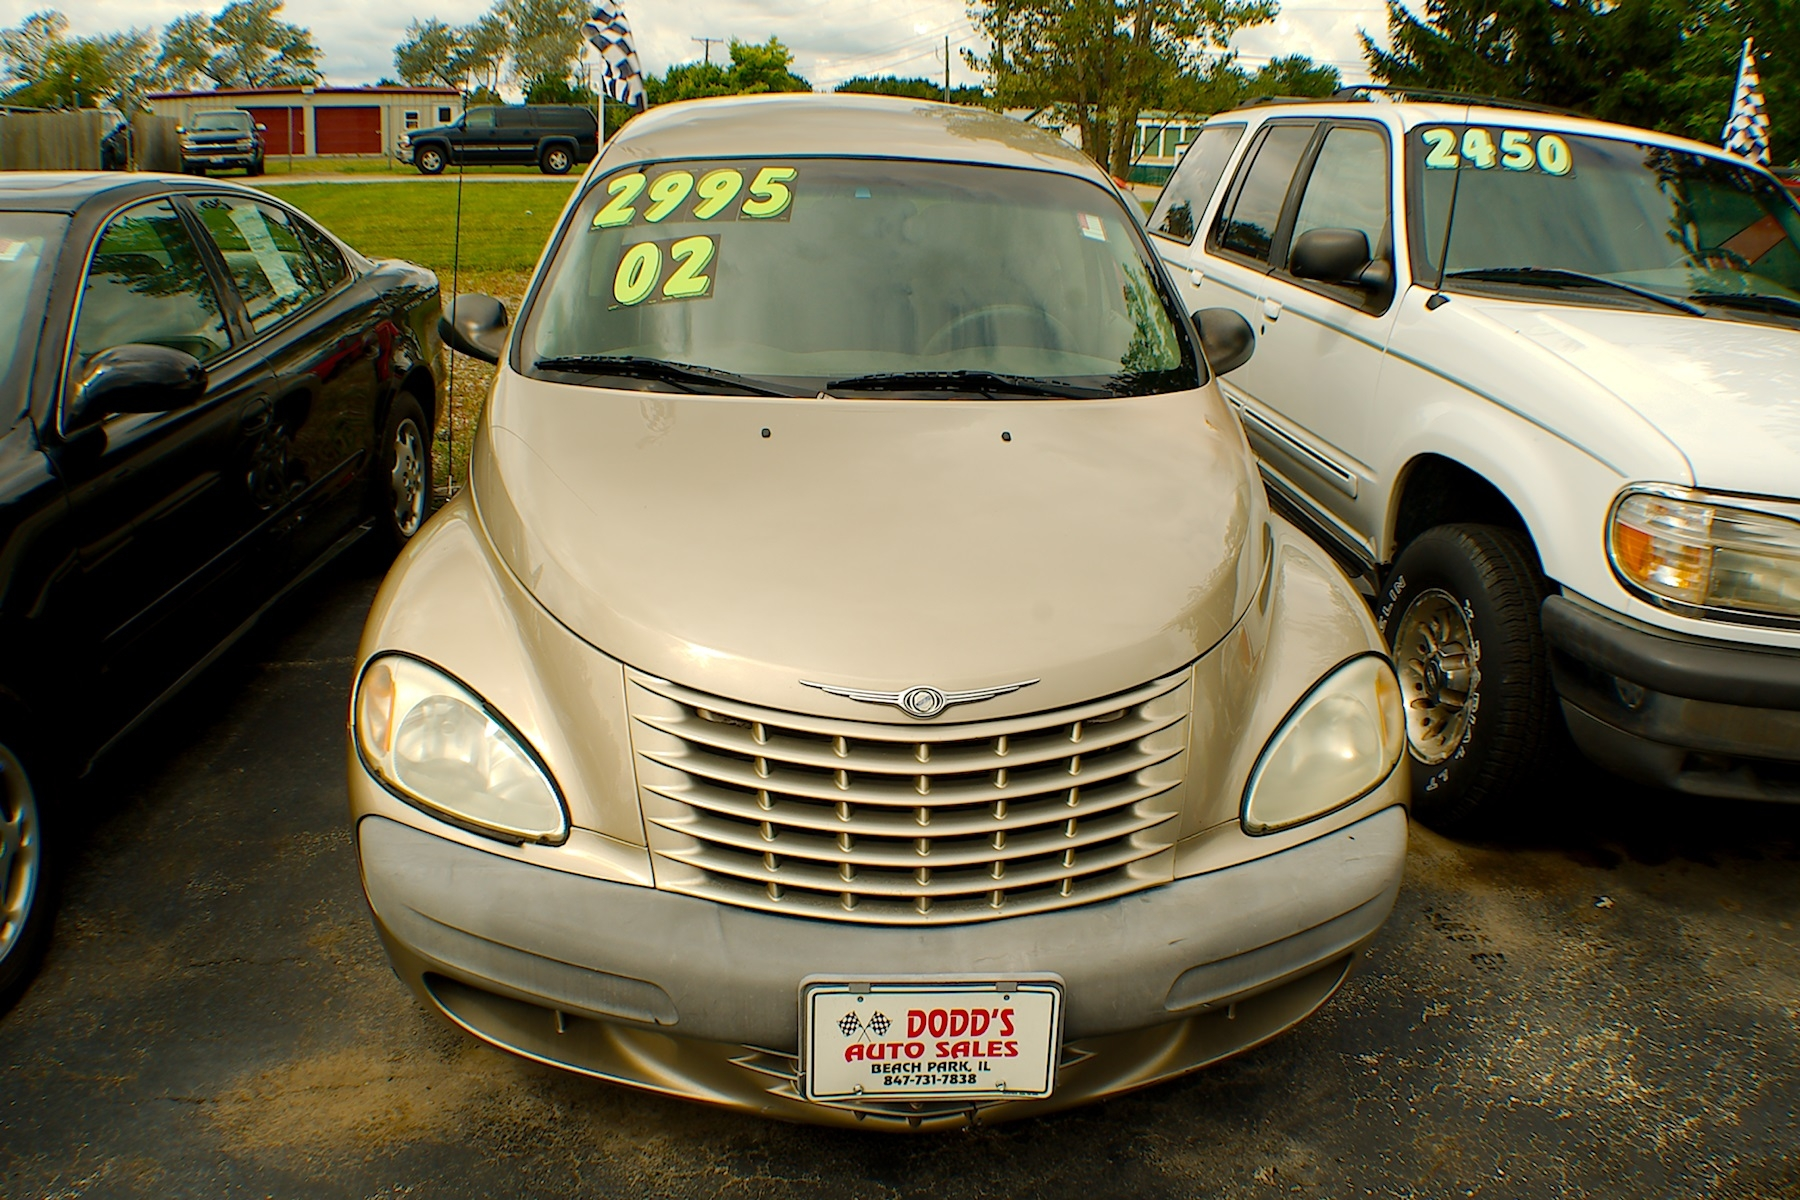 2002 Chrysler PT Cruiser Sand Wagon Used Car Sale Gurnee Kenosha Mchenry Chicago Illinois